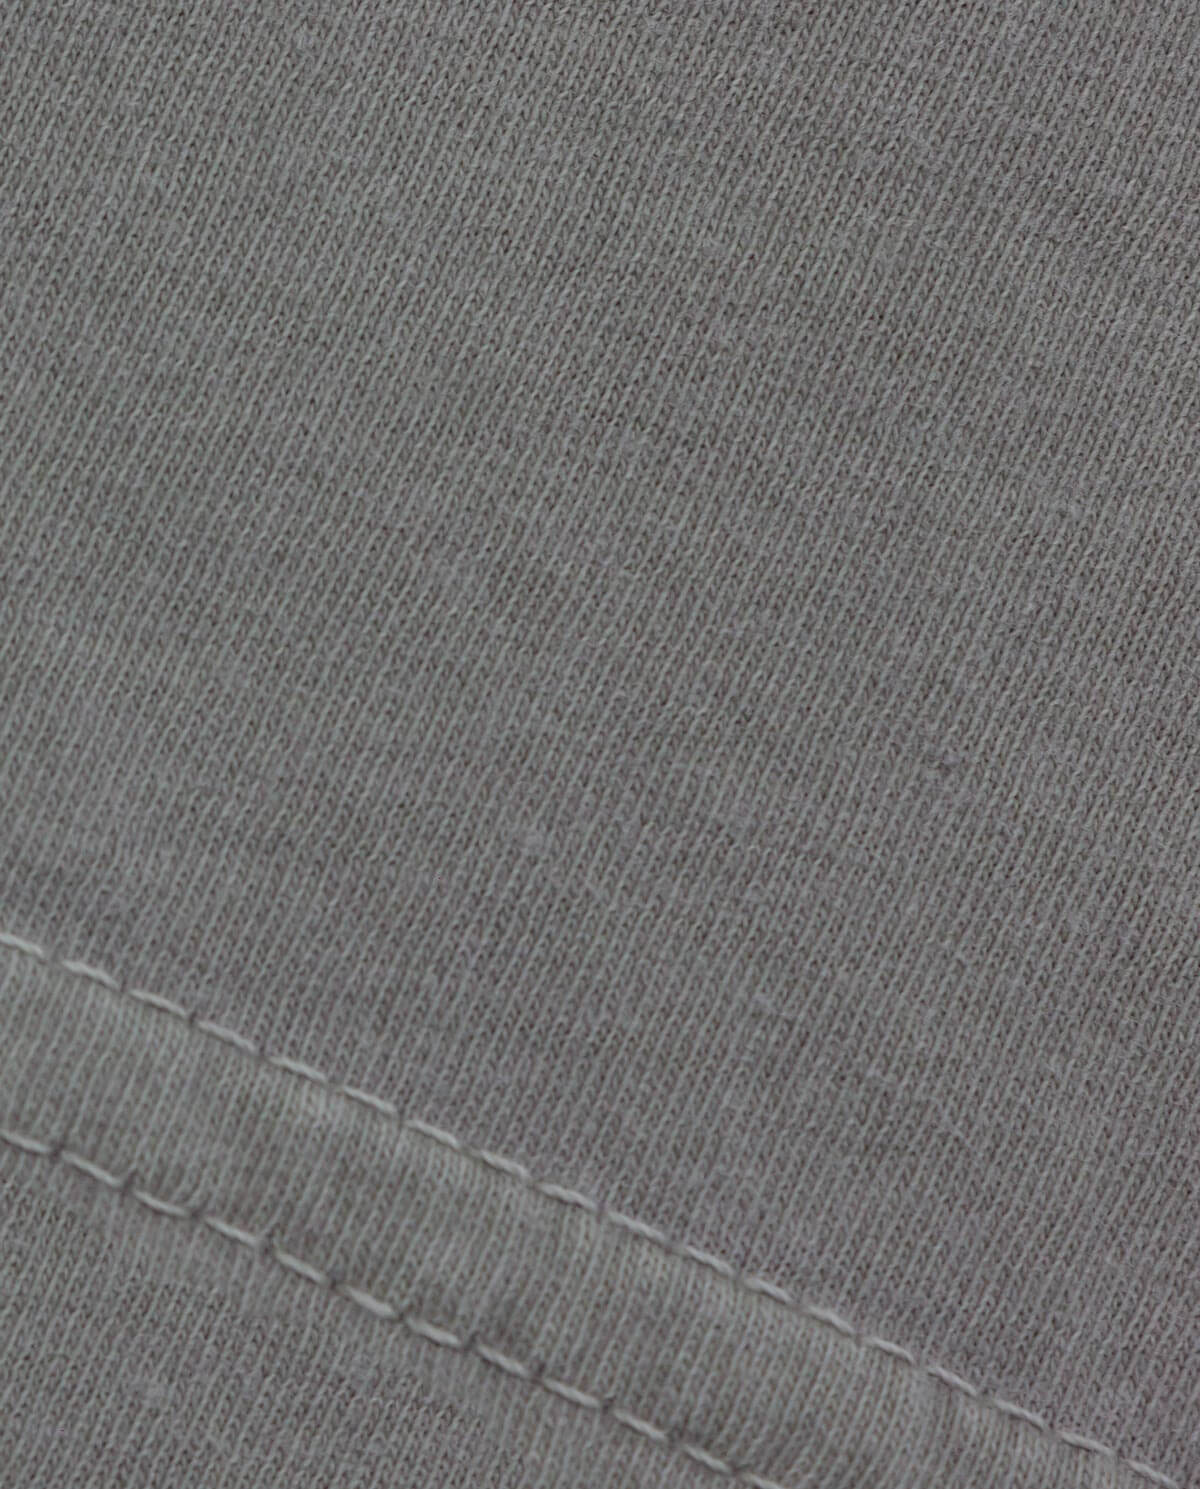 Ahnako Basic Tee Shirt - Suva Grey - Fabric Close Up